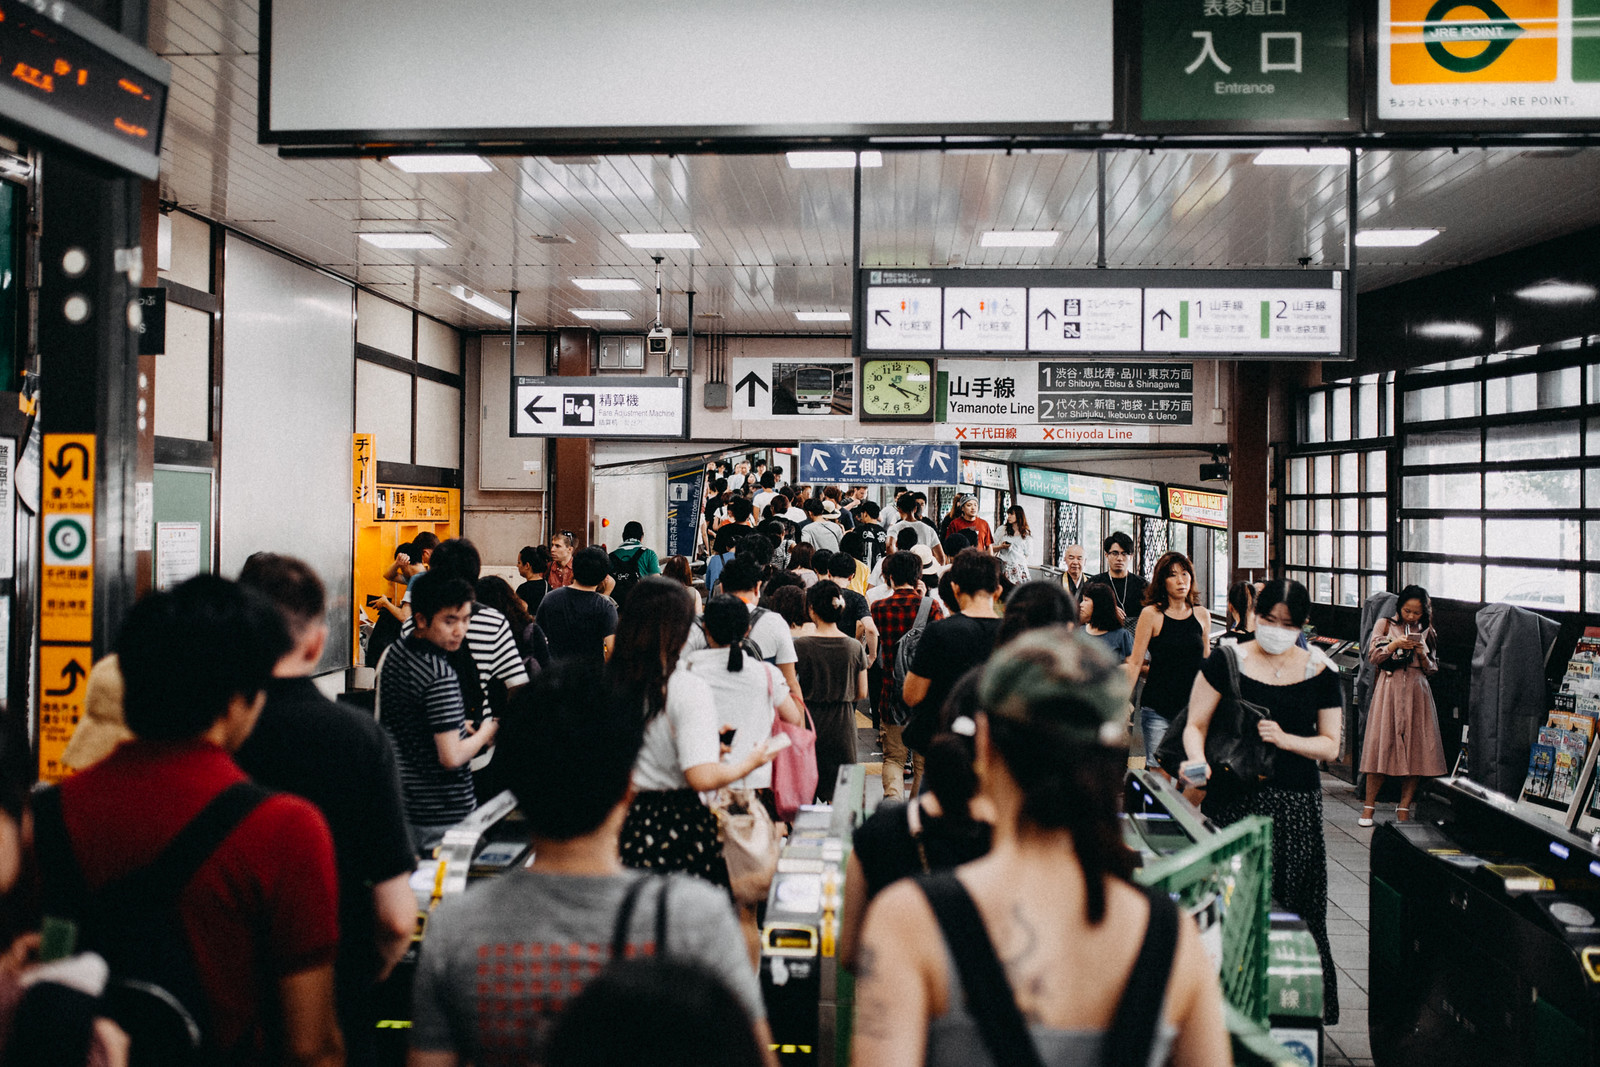 Inside a crowded subway station near Harajuku and Yoyogi Park in Tokyo Japan full of people